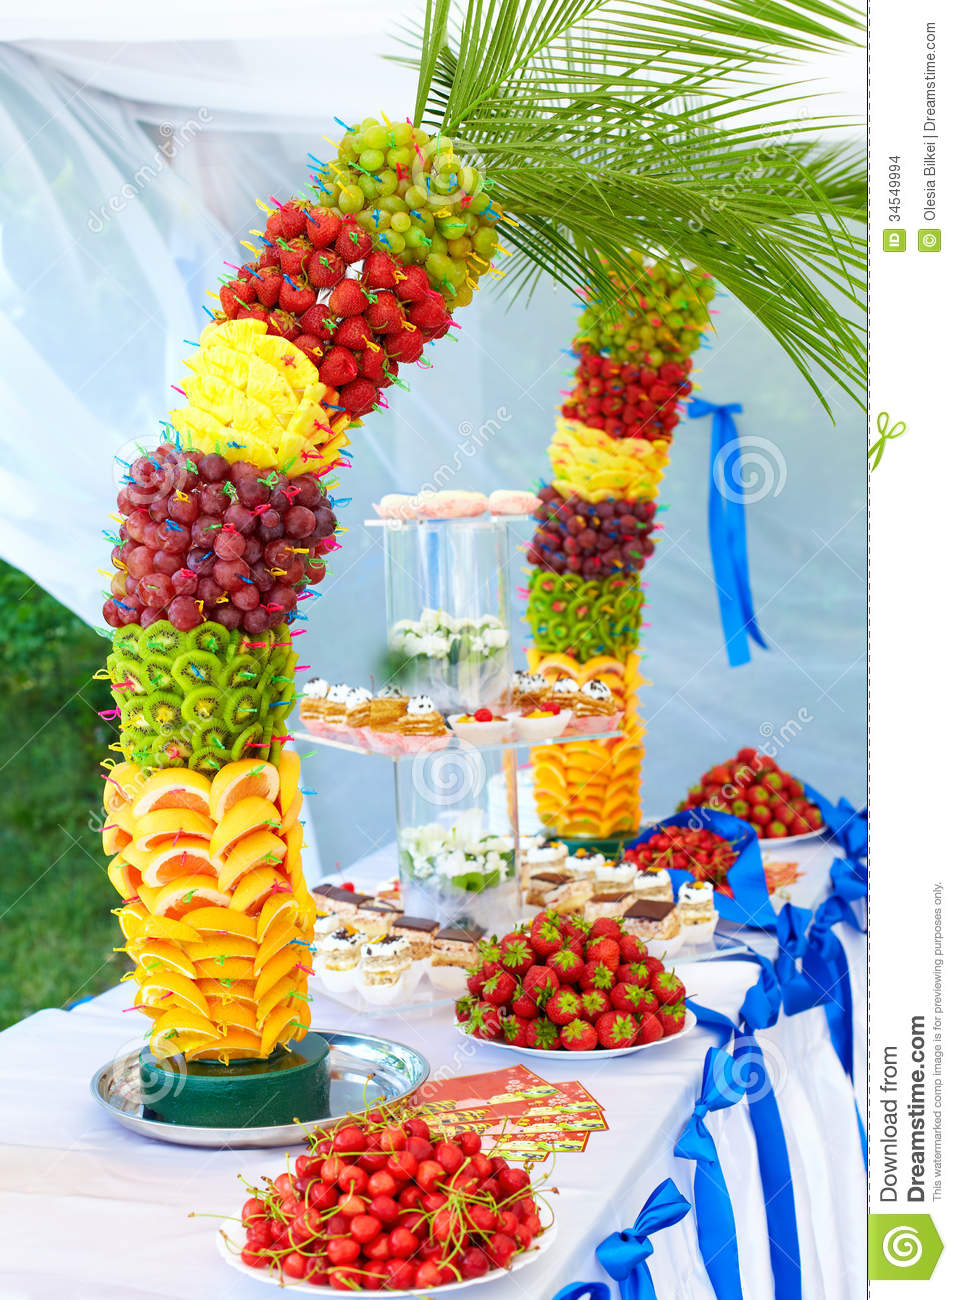 Images Of Cakes Decorated With Fruits